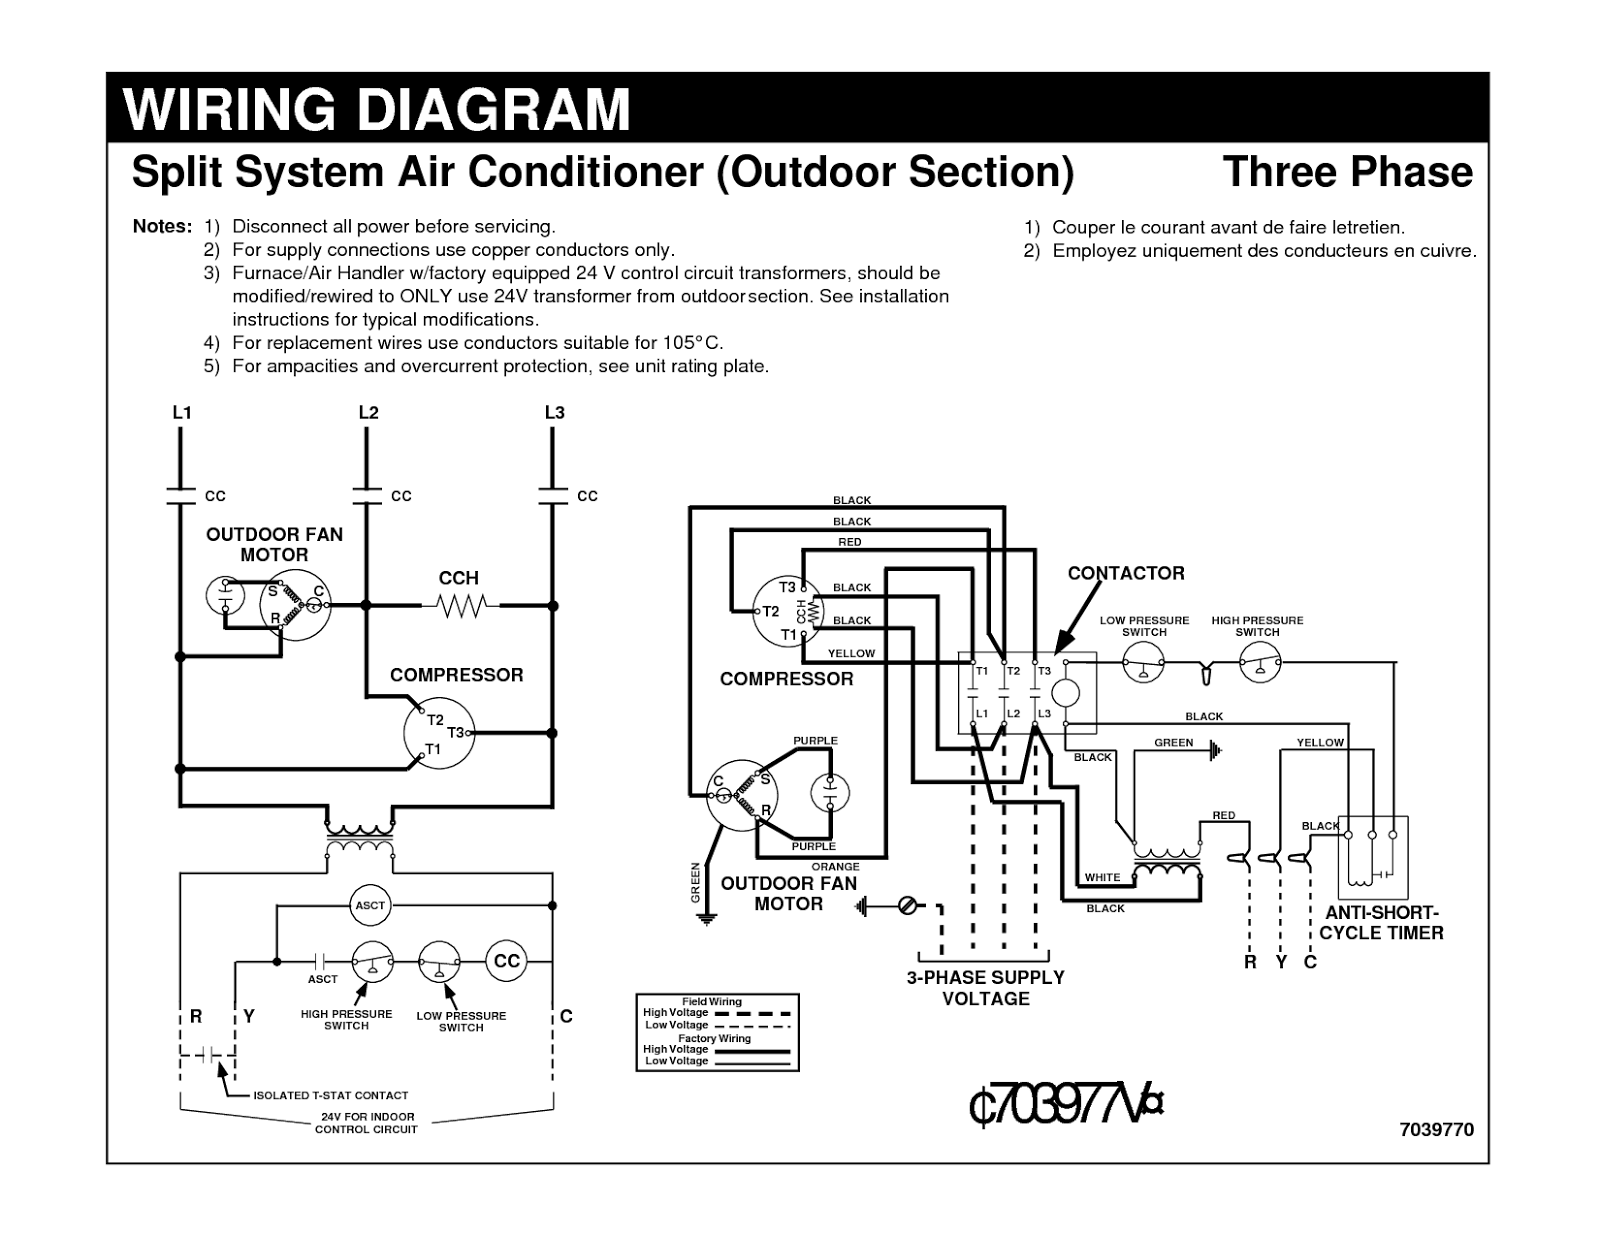 WIRING DIAGRAM FOR AIRCON - Auto Electrical Wiring Diagram on compressor relay wiring diagram, craftsman air compressor wiring diagram, intertherm air conditioner wiring diagram, air compressor 240v wiring-diagram, air compressor relay diagram, a c compressor diagram, refrigeration compressor wiring diagram, single phase compressor wiring diagram, air compressor diagram design, air compressor solenoid diagram, devilbiss air compressor wiring diagram, air compressor electrical diagram, air compressor with 220v wiring, air conditioner fuses 30 amp, air compressor installation diagram, air compressor capacitor wiring diagram, ac compressor wiring diagram, volt air compressor wiring diagram, gas air compressor unloader valve diagram, air compressor magnetic starter wiring,